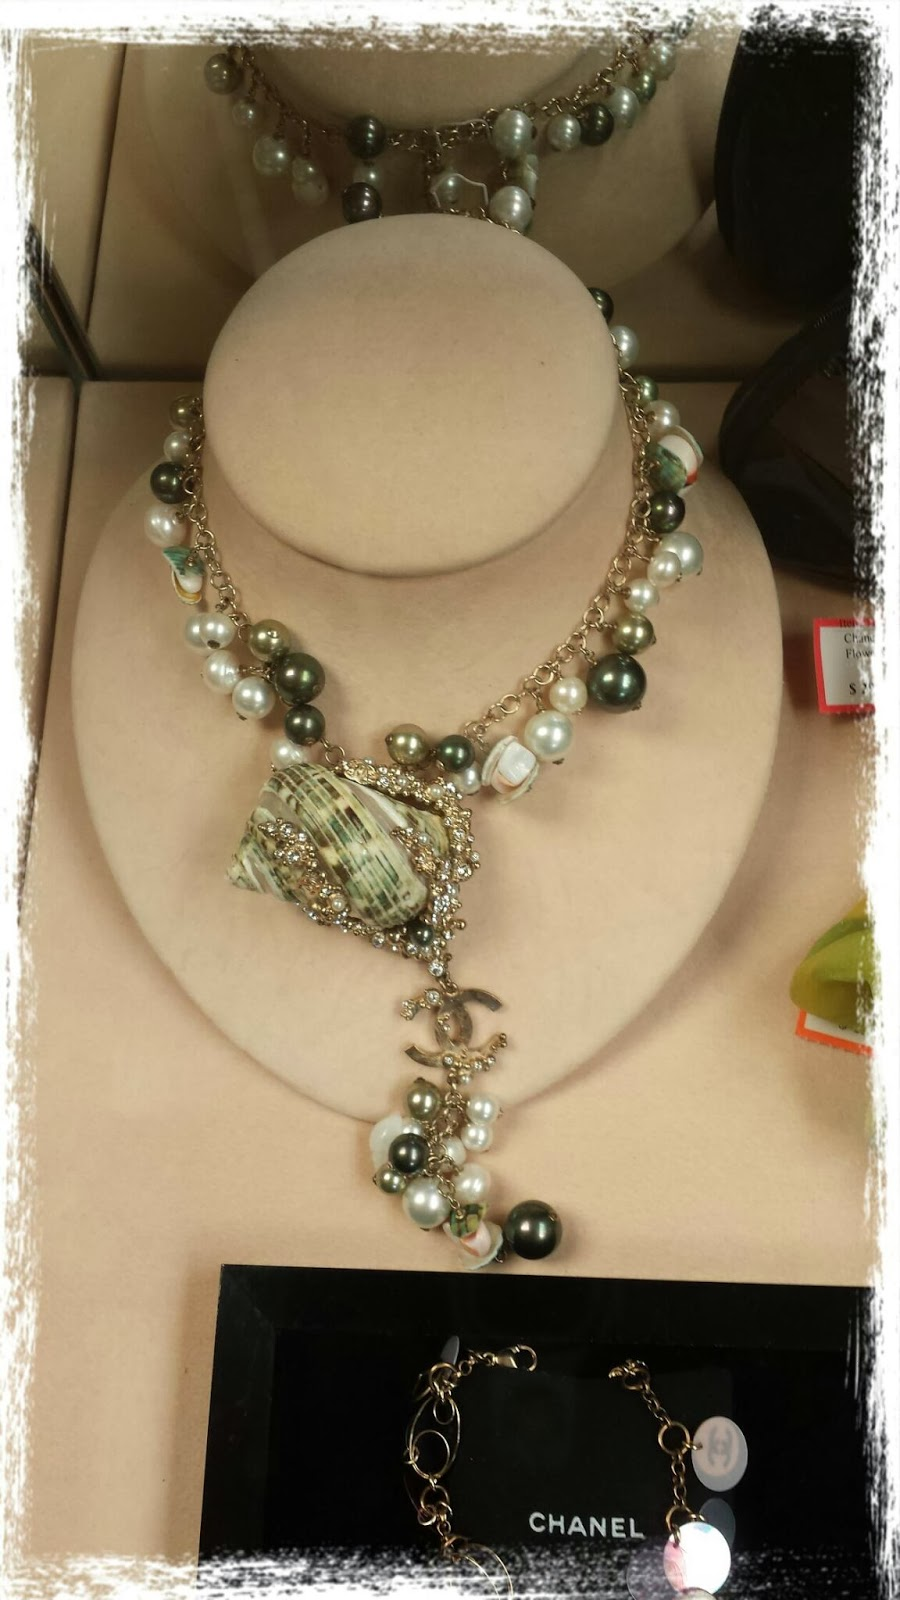 Bellissima Designer Re Boutique 2850 East Coast Hwy Corona Del Mar Consignment Jewelry Ideas